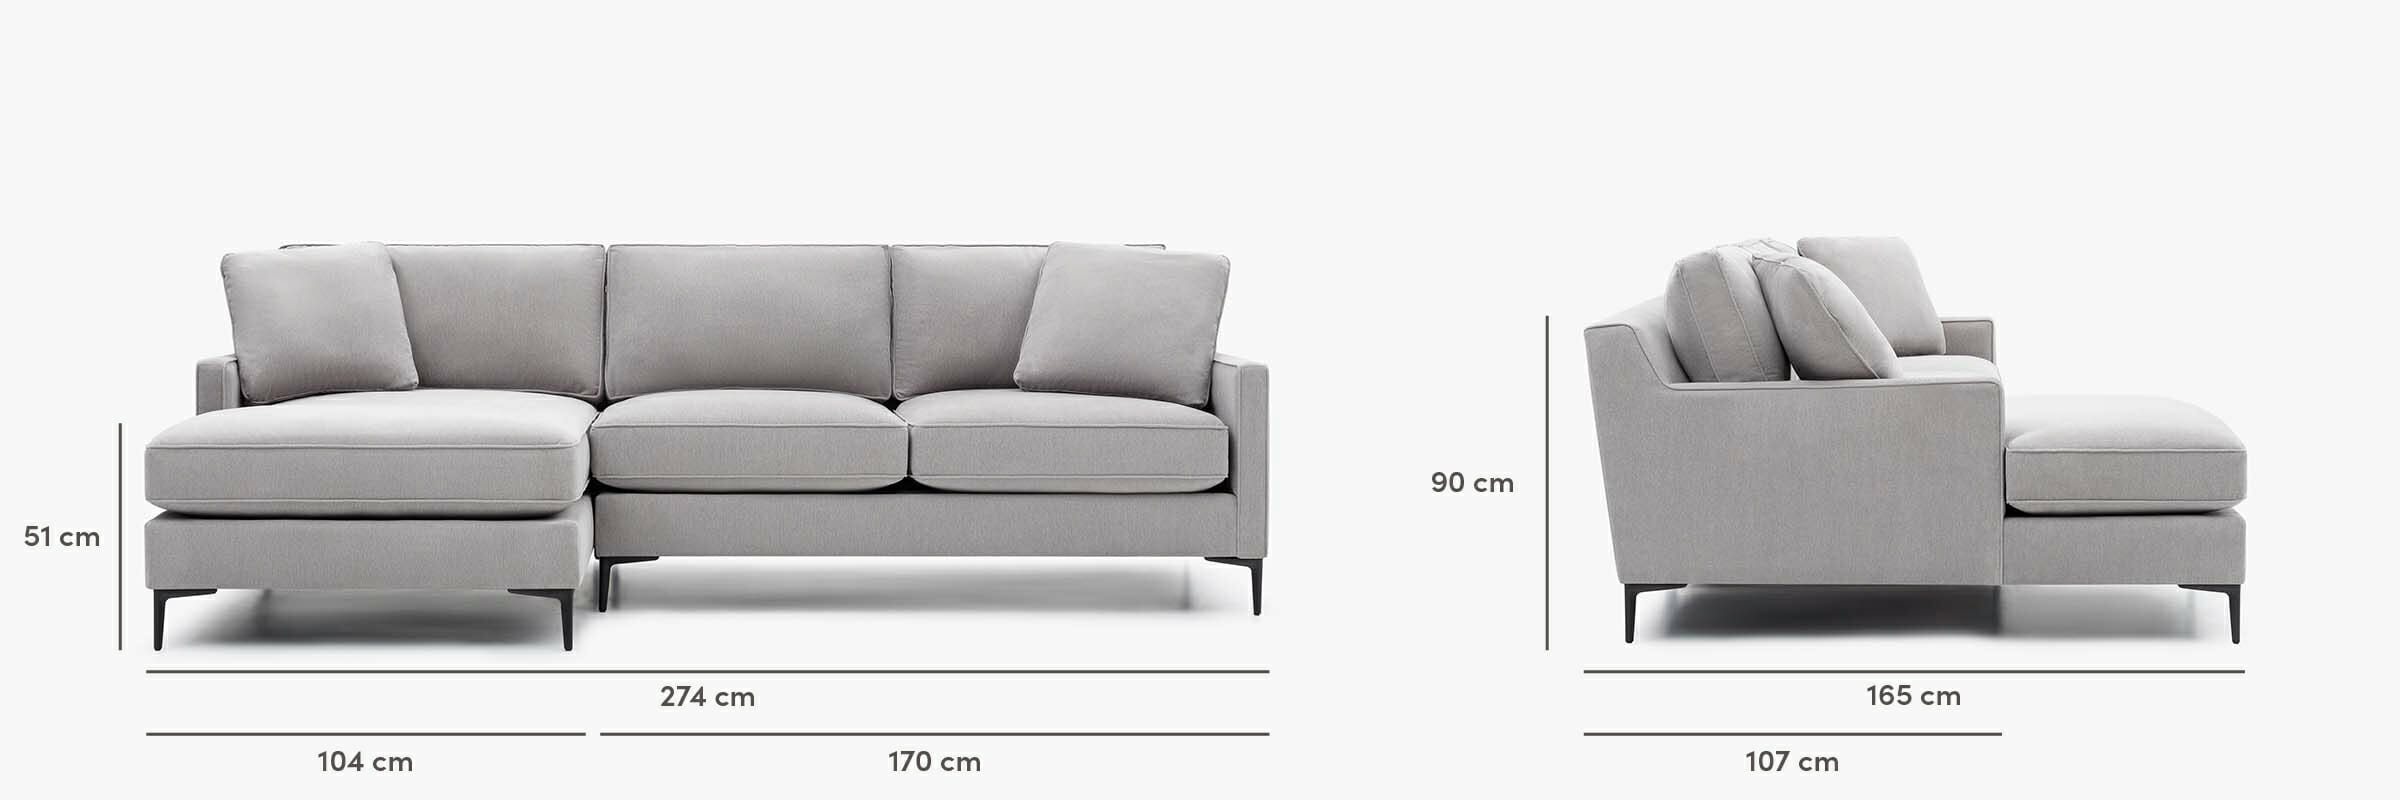 Kennedy sectional dimensions